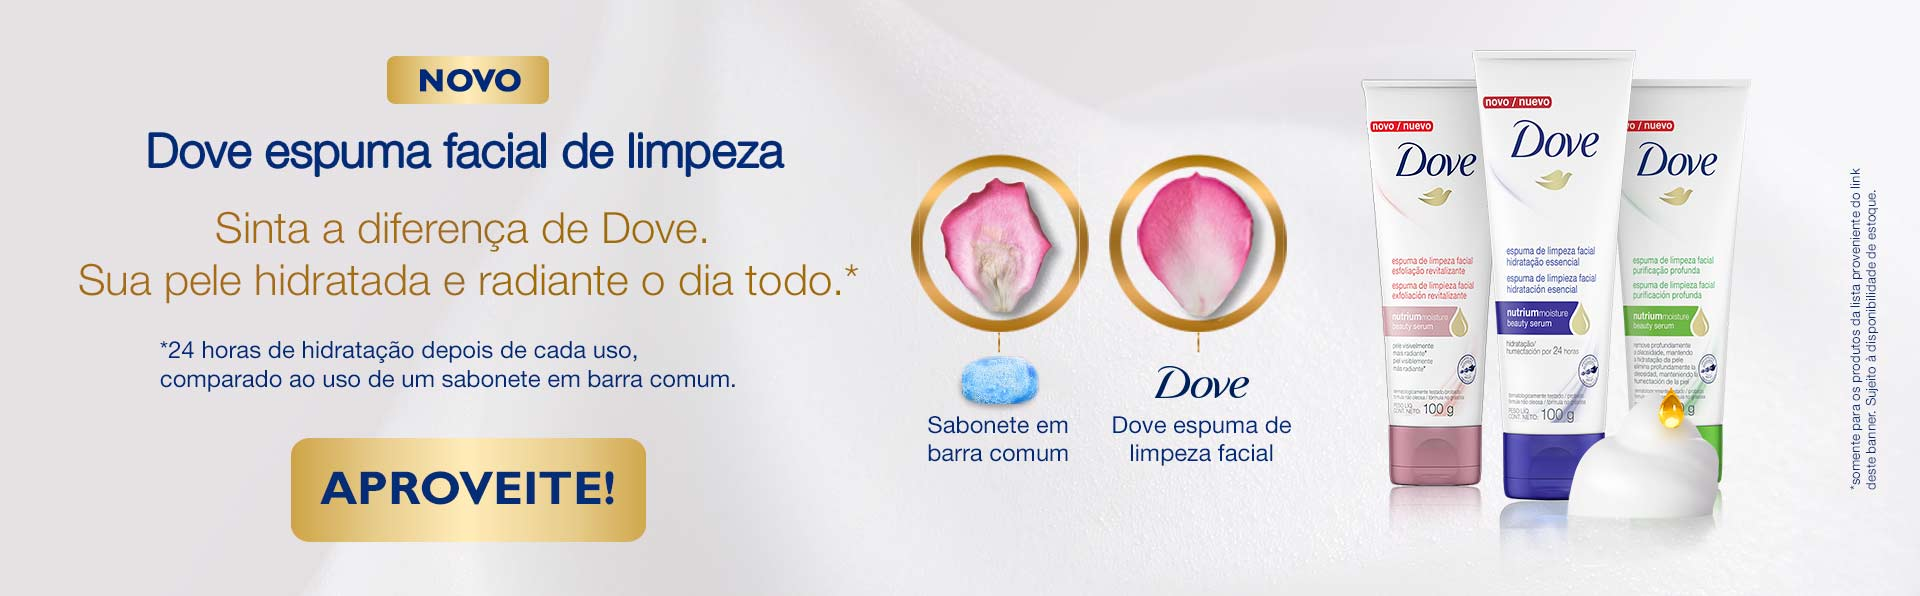 Dove Espuma Facial